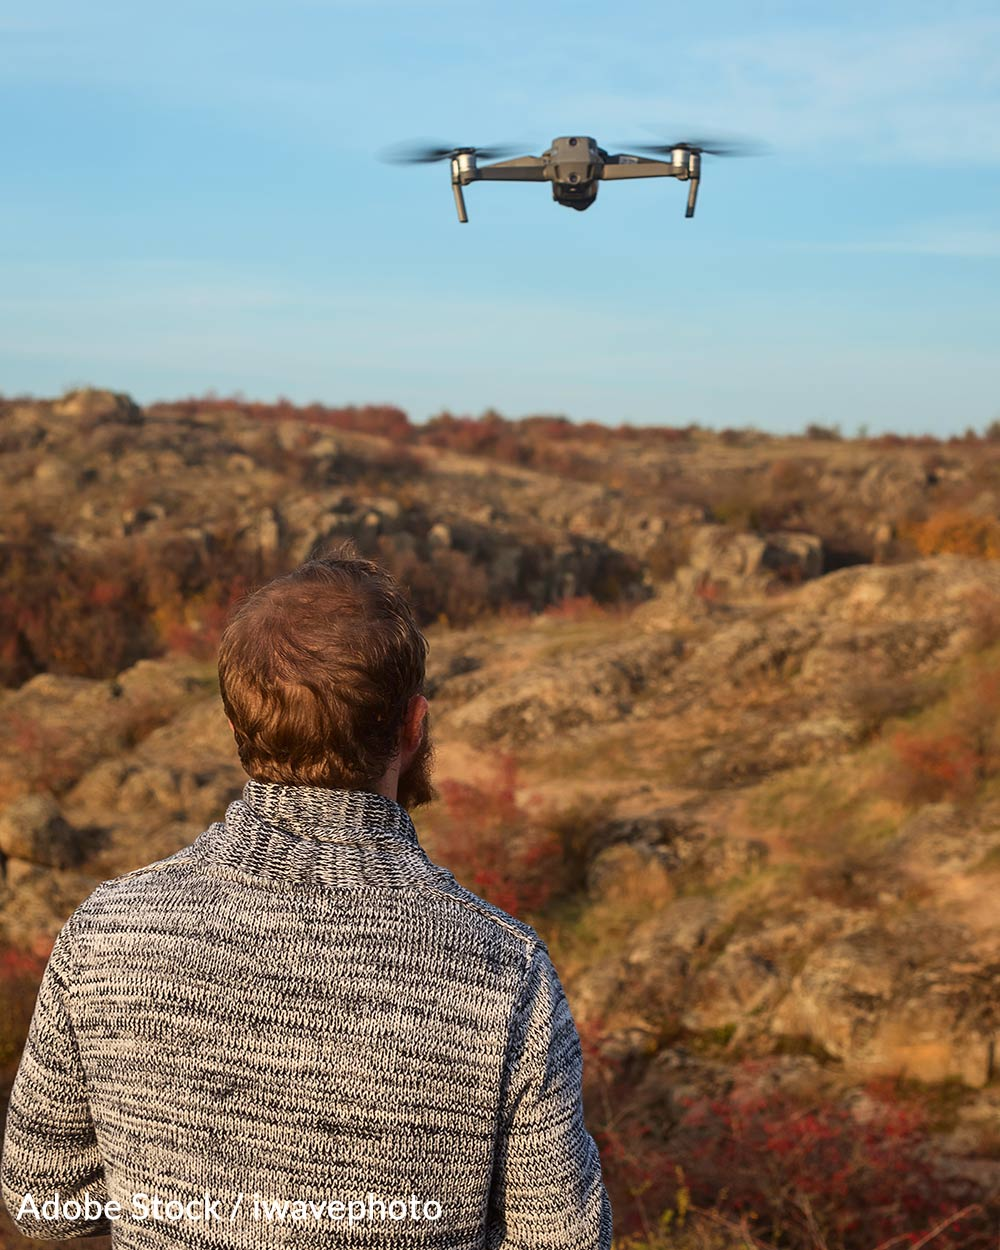 An increase in drone usage has led to an increase in run-ins with wildlife.